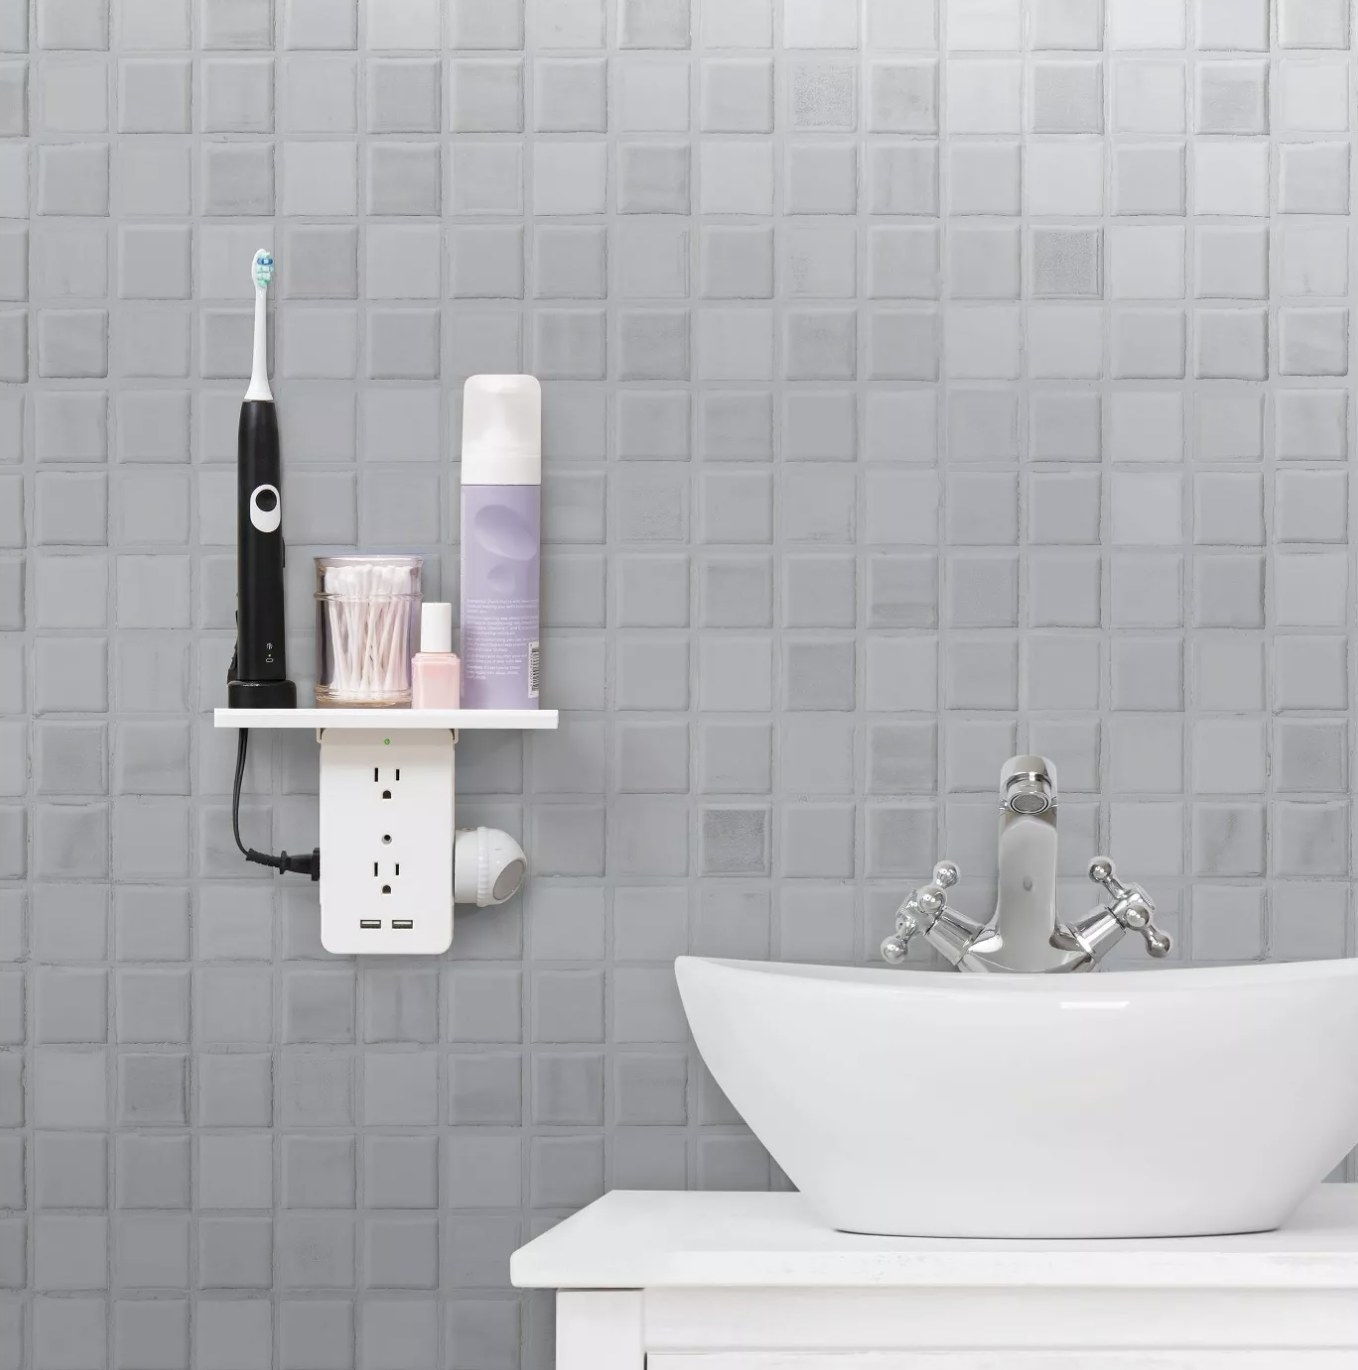 The outlet shelf in a bathroom